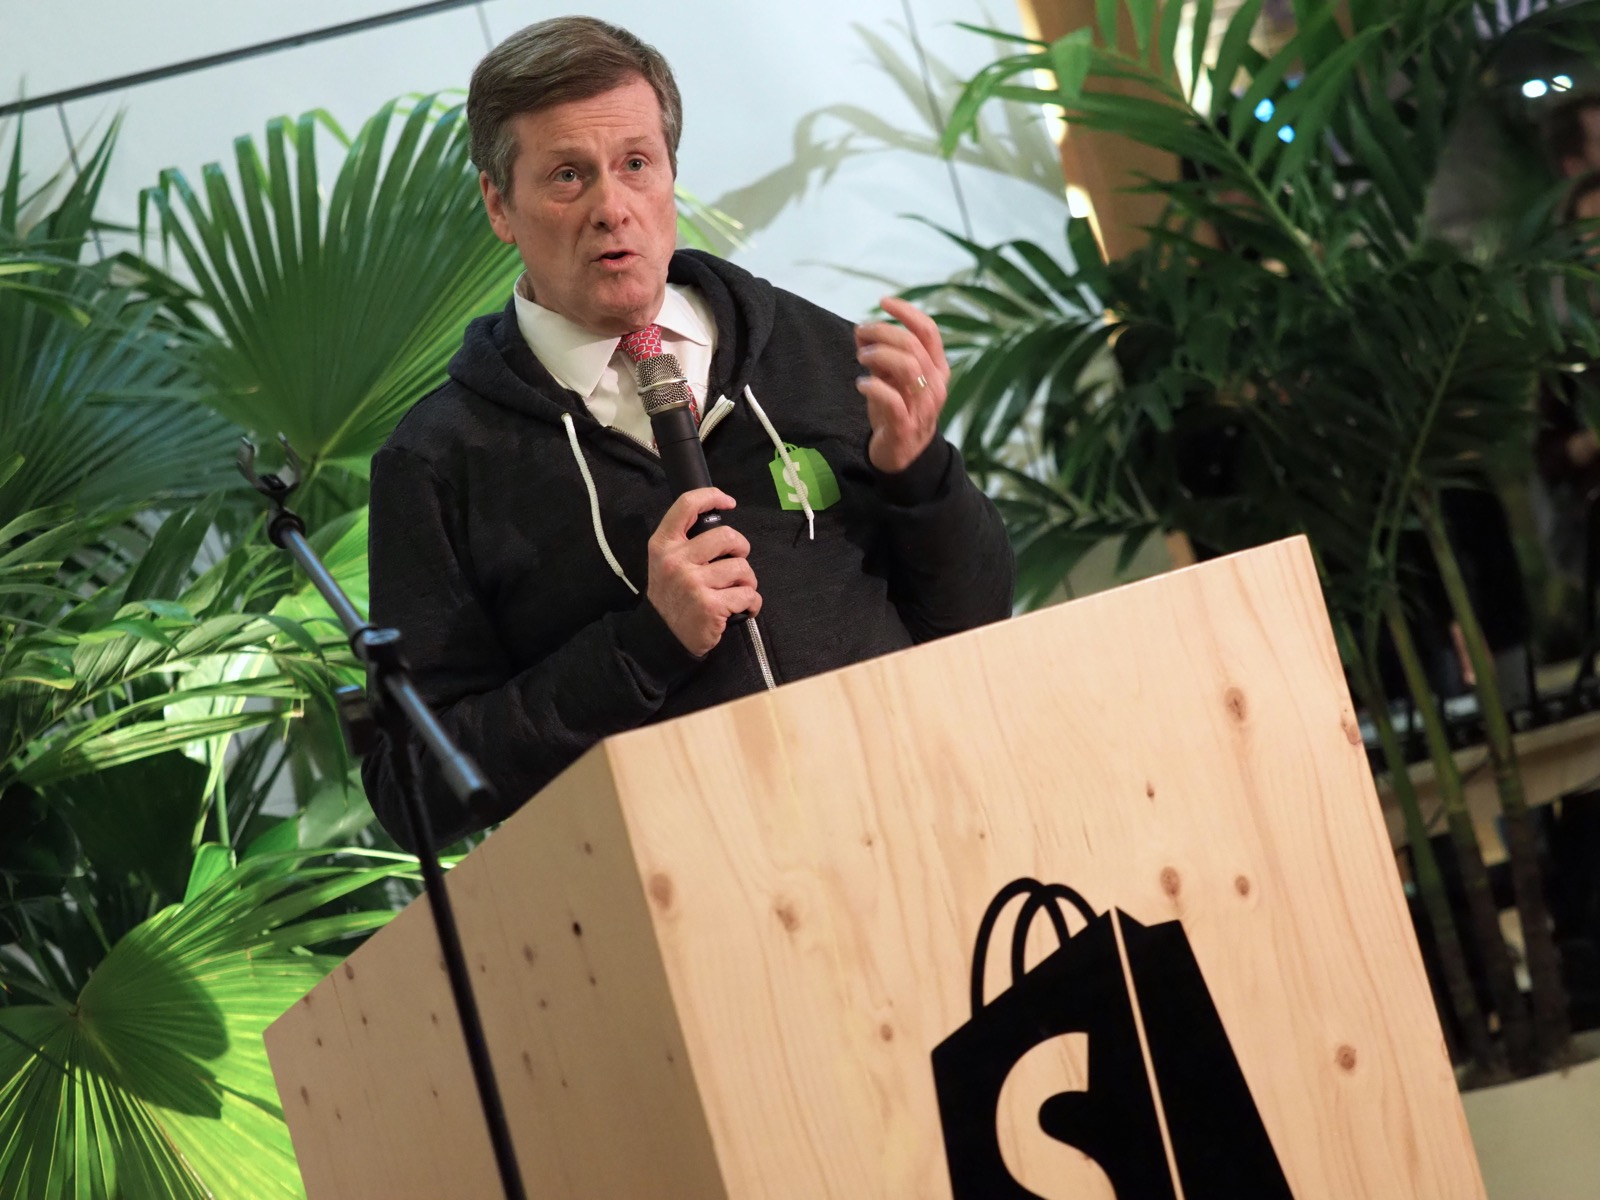 Toronto Mayor John Tory at Shopify's new expansion office opening.